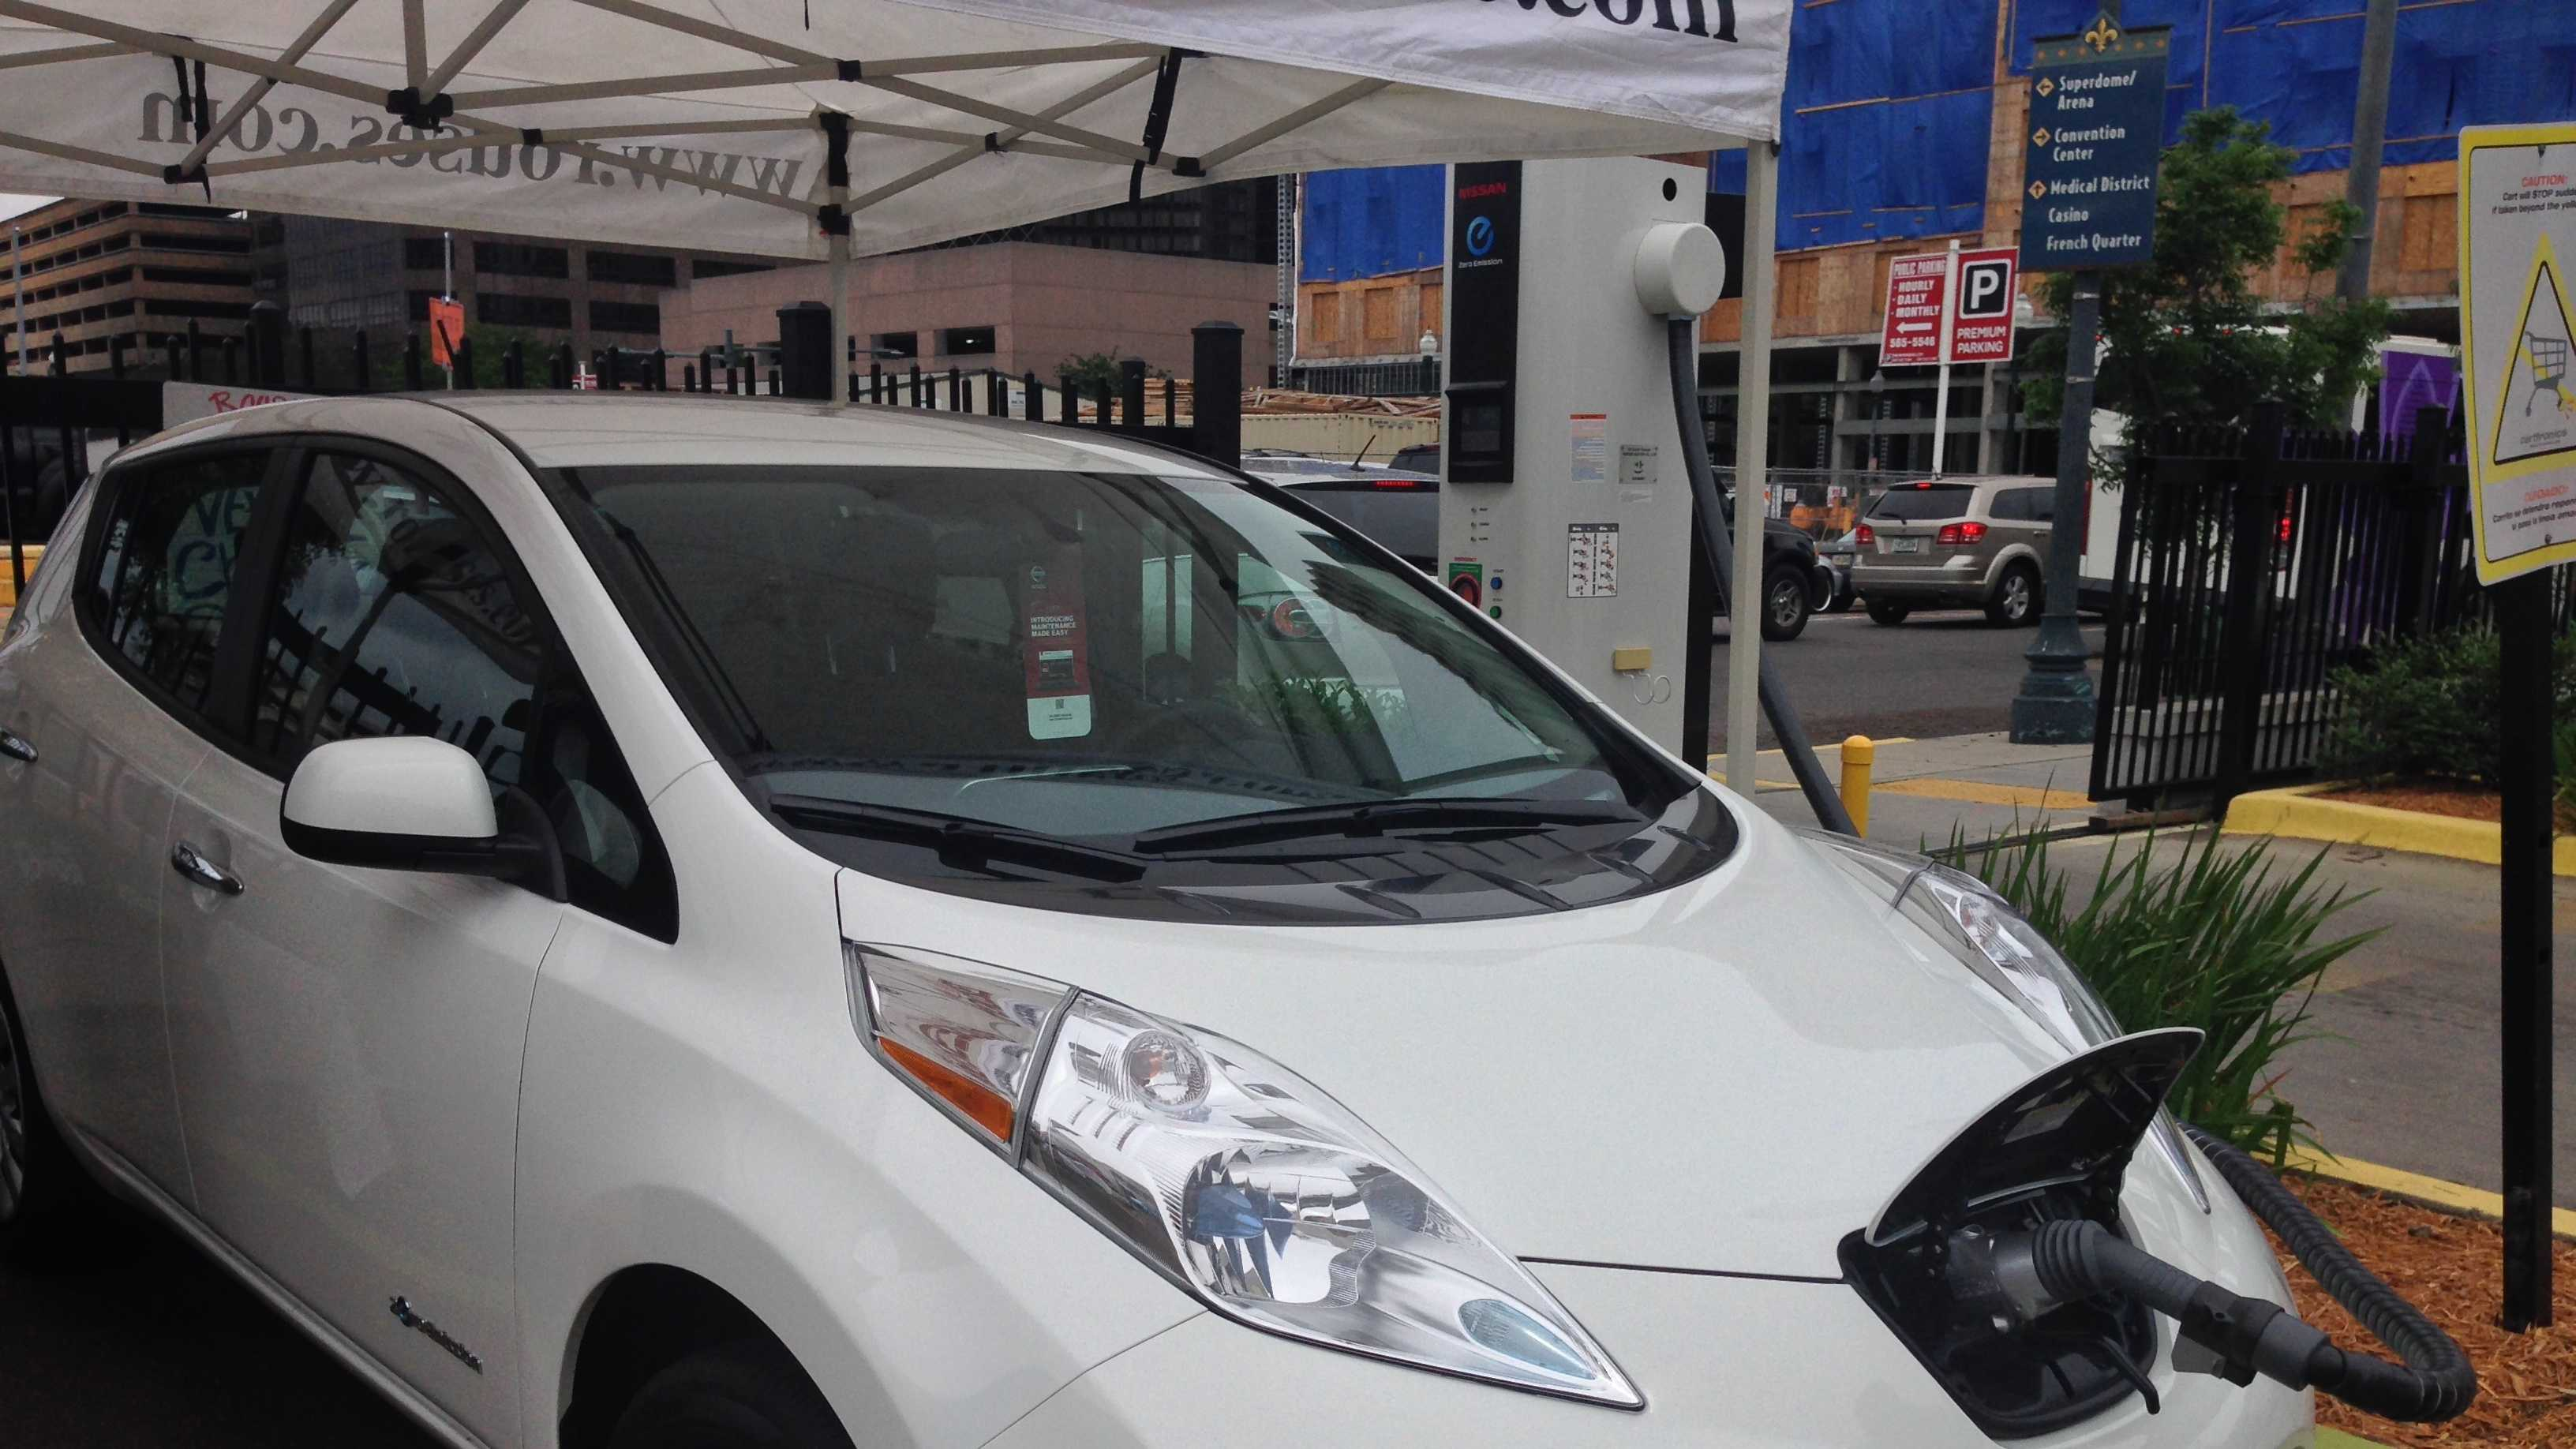 Rouses electric car quick charger is an innovative addition to downtown New Orleans.